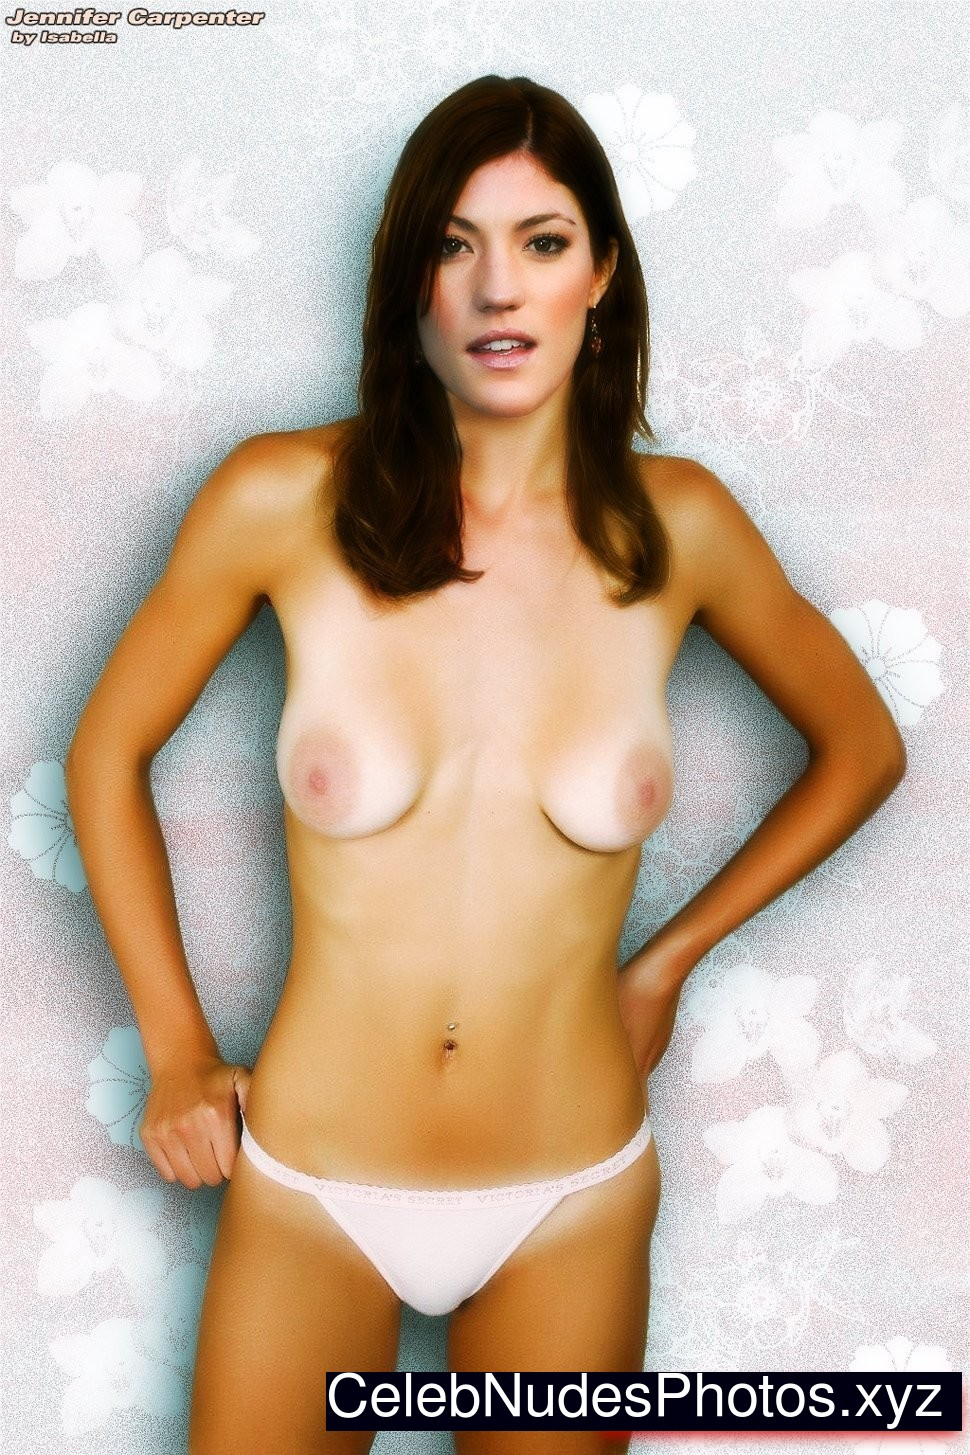 Consider, that Jennifer carpenter real nude congratulate, what